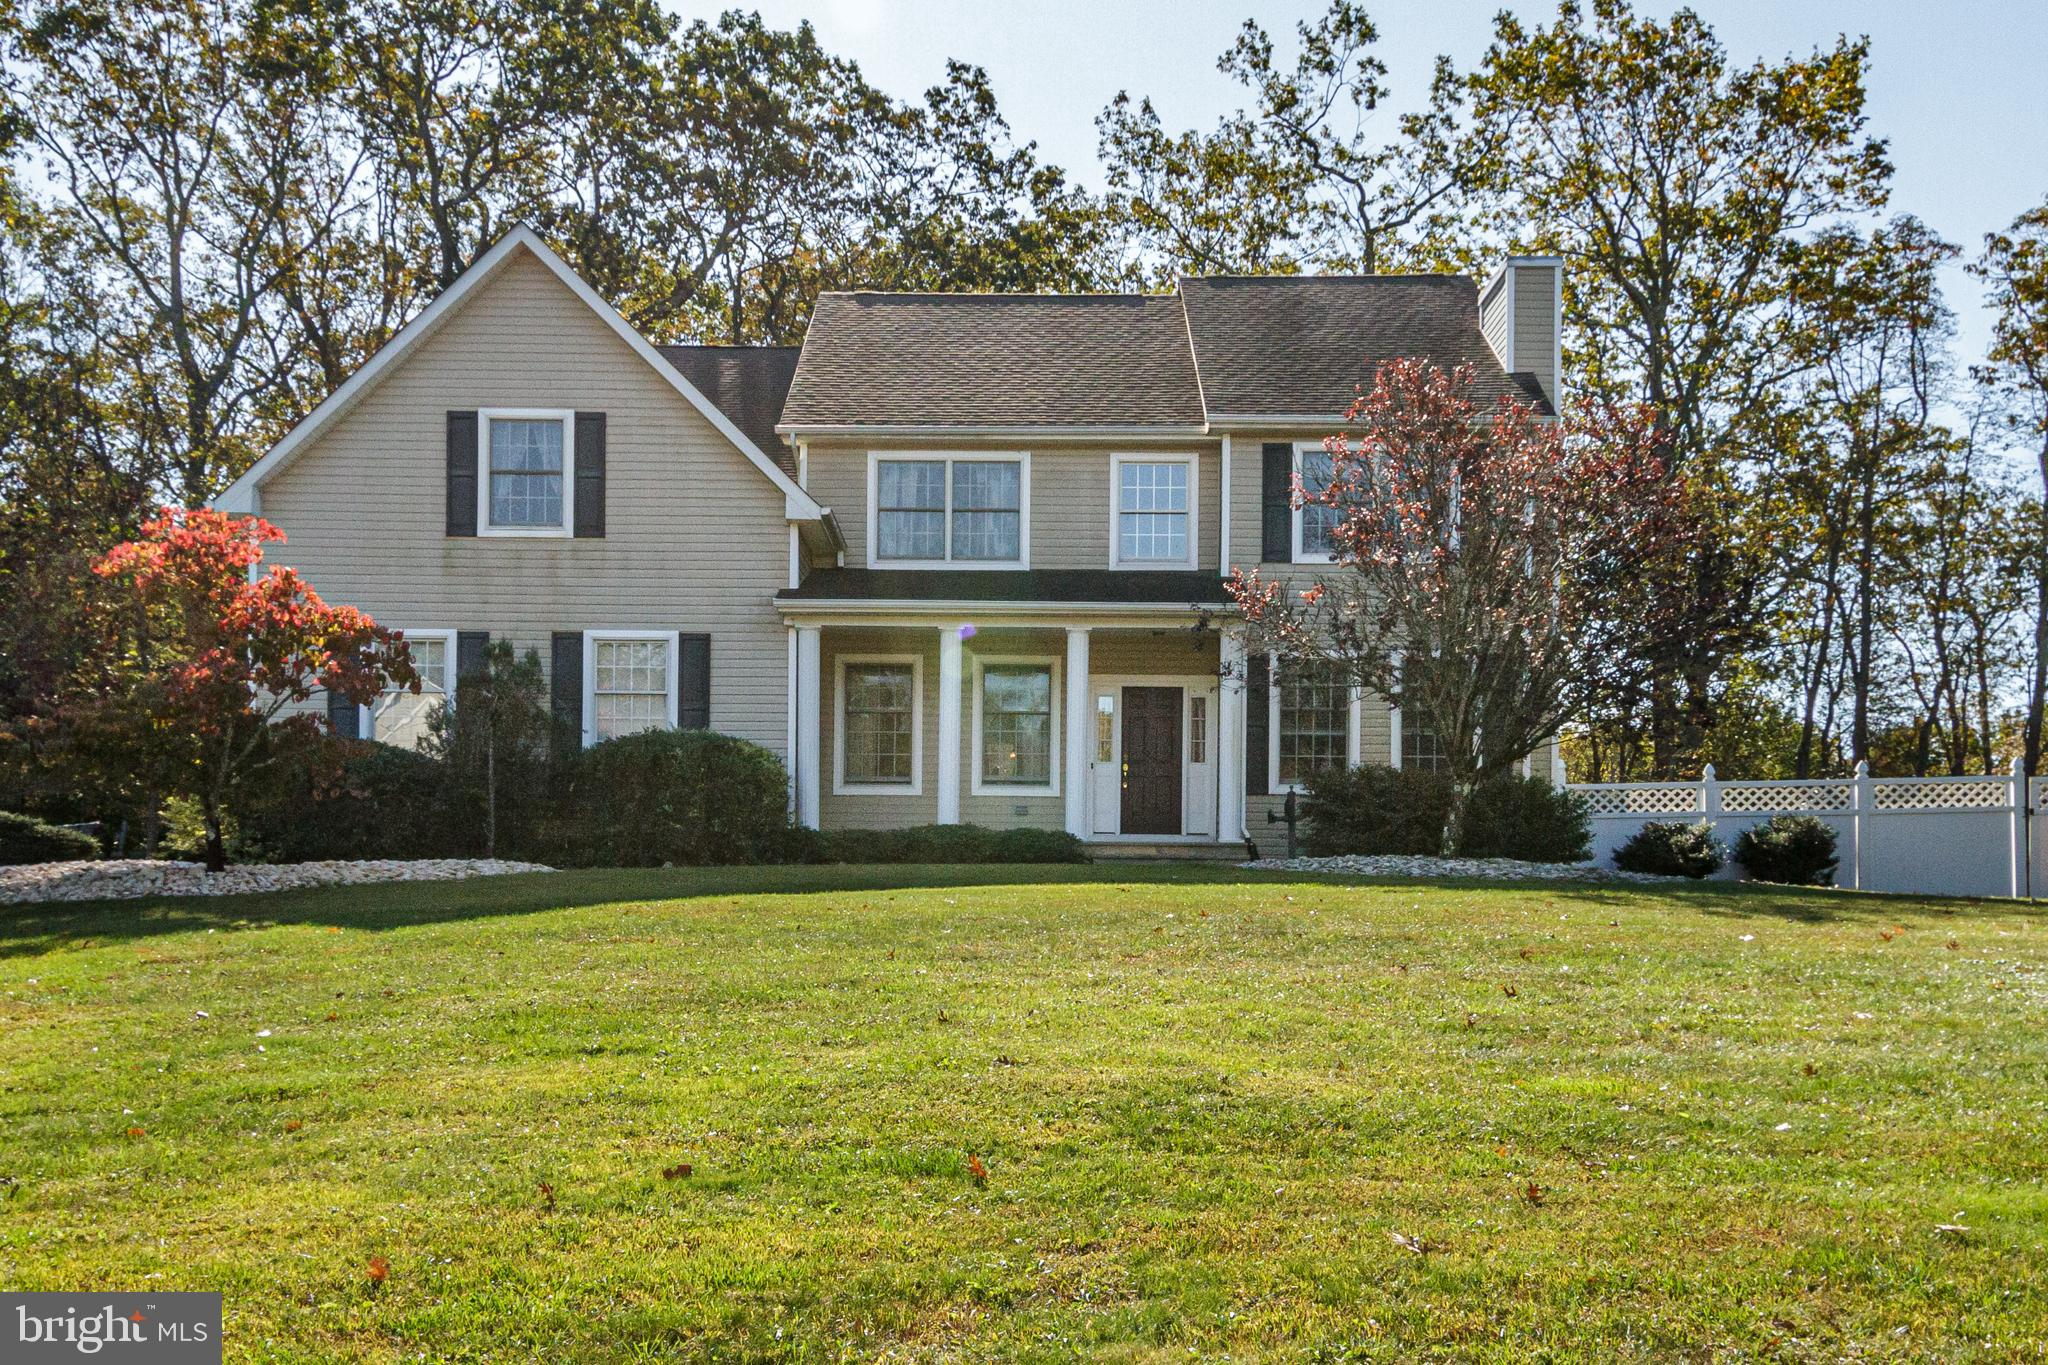 165 HEMLOCK DRIVE, NEW EGYPT, NJ 08533